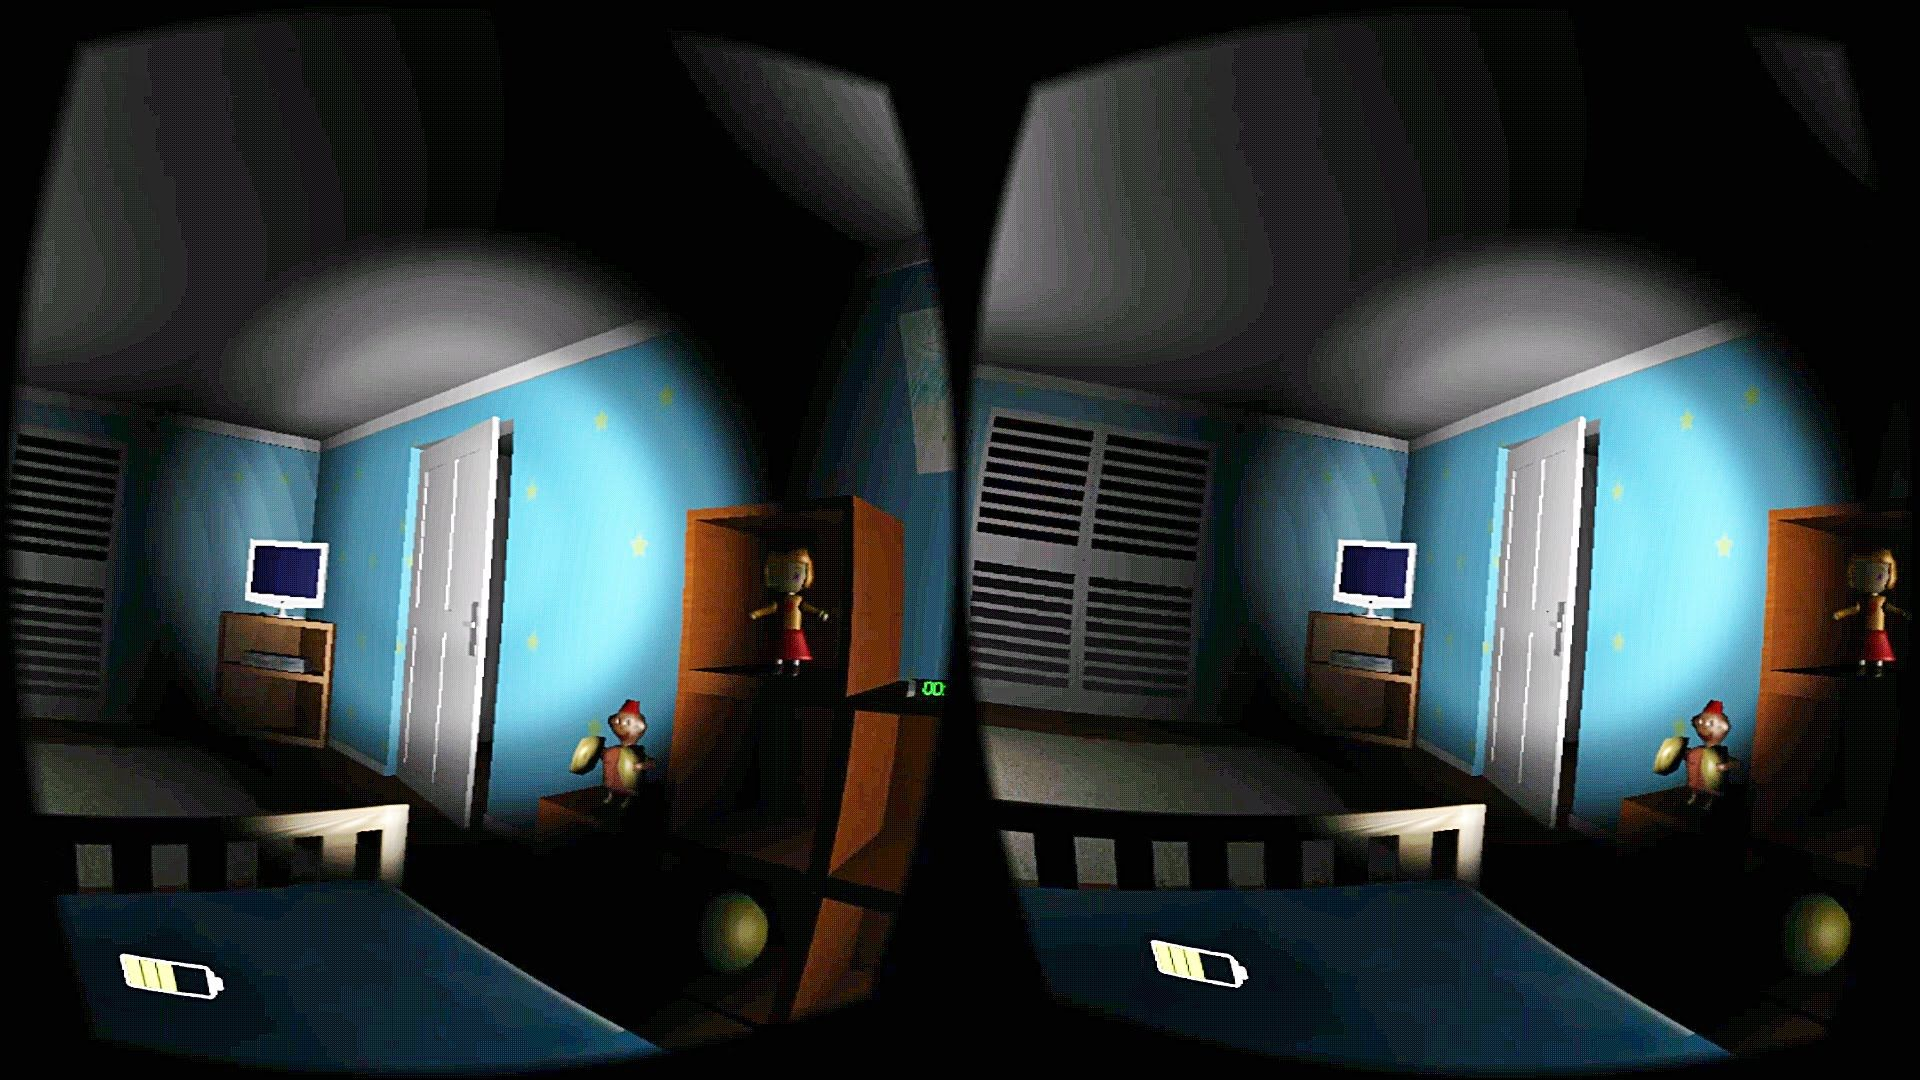 Boogeyman Scary Vr Google Cardboard 3d Sbs Gameplay 1080p Virtual Reality Vr Horror Games Google Vr Cardboard Google Cardboard